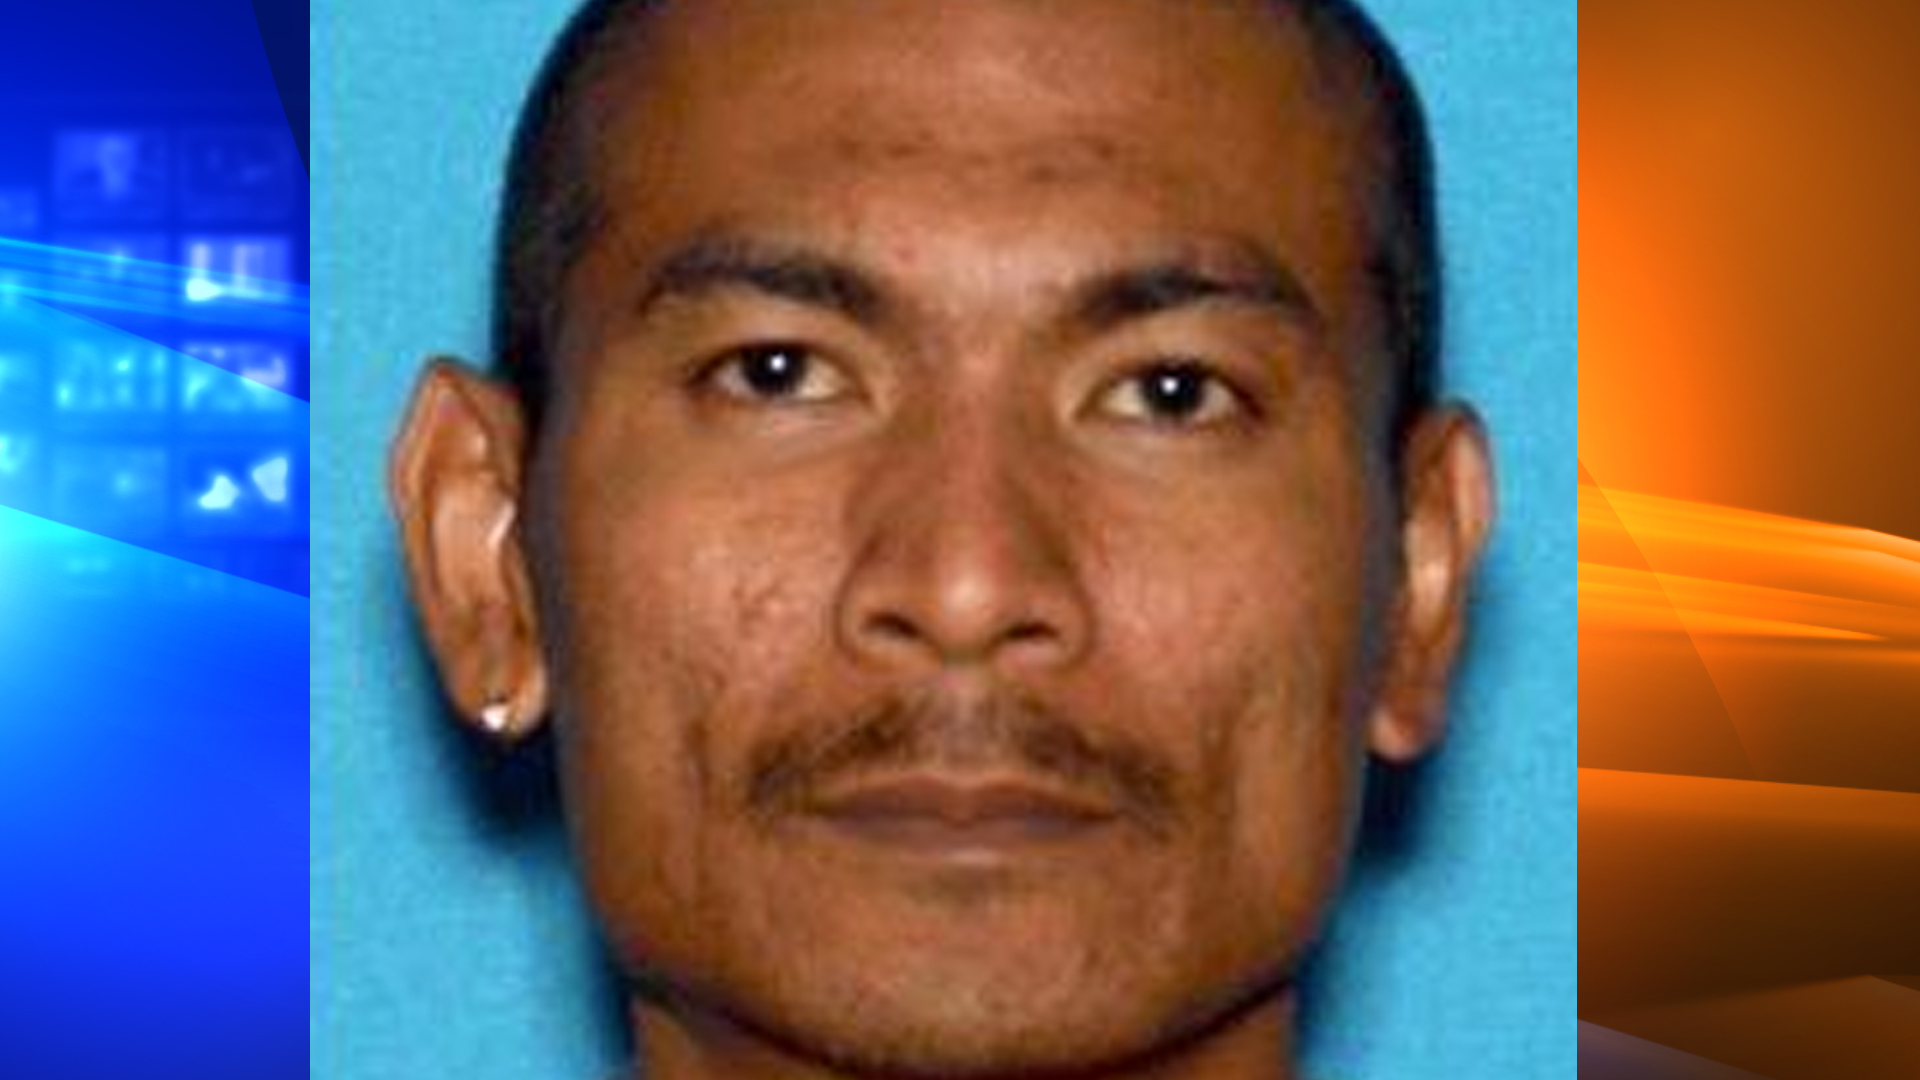 Adul Saosongyang is seen in an image shared by the Vacaville Police Department on Jan. 8, 2019.